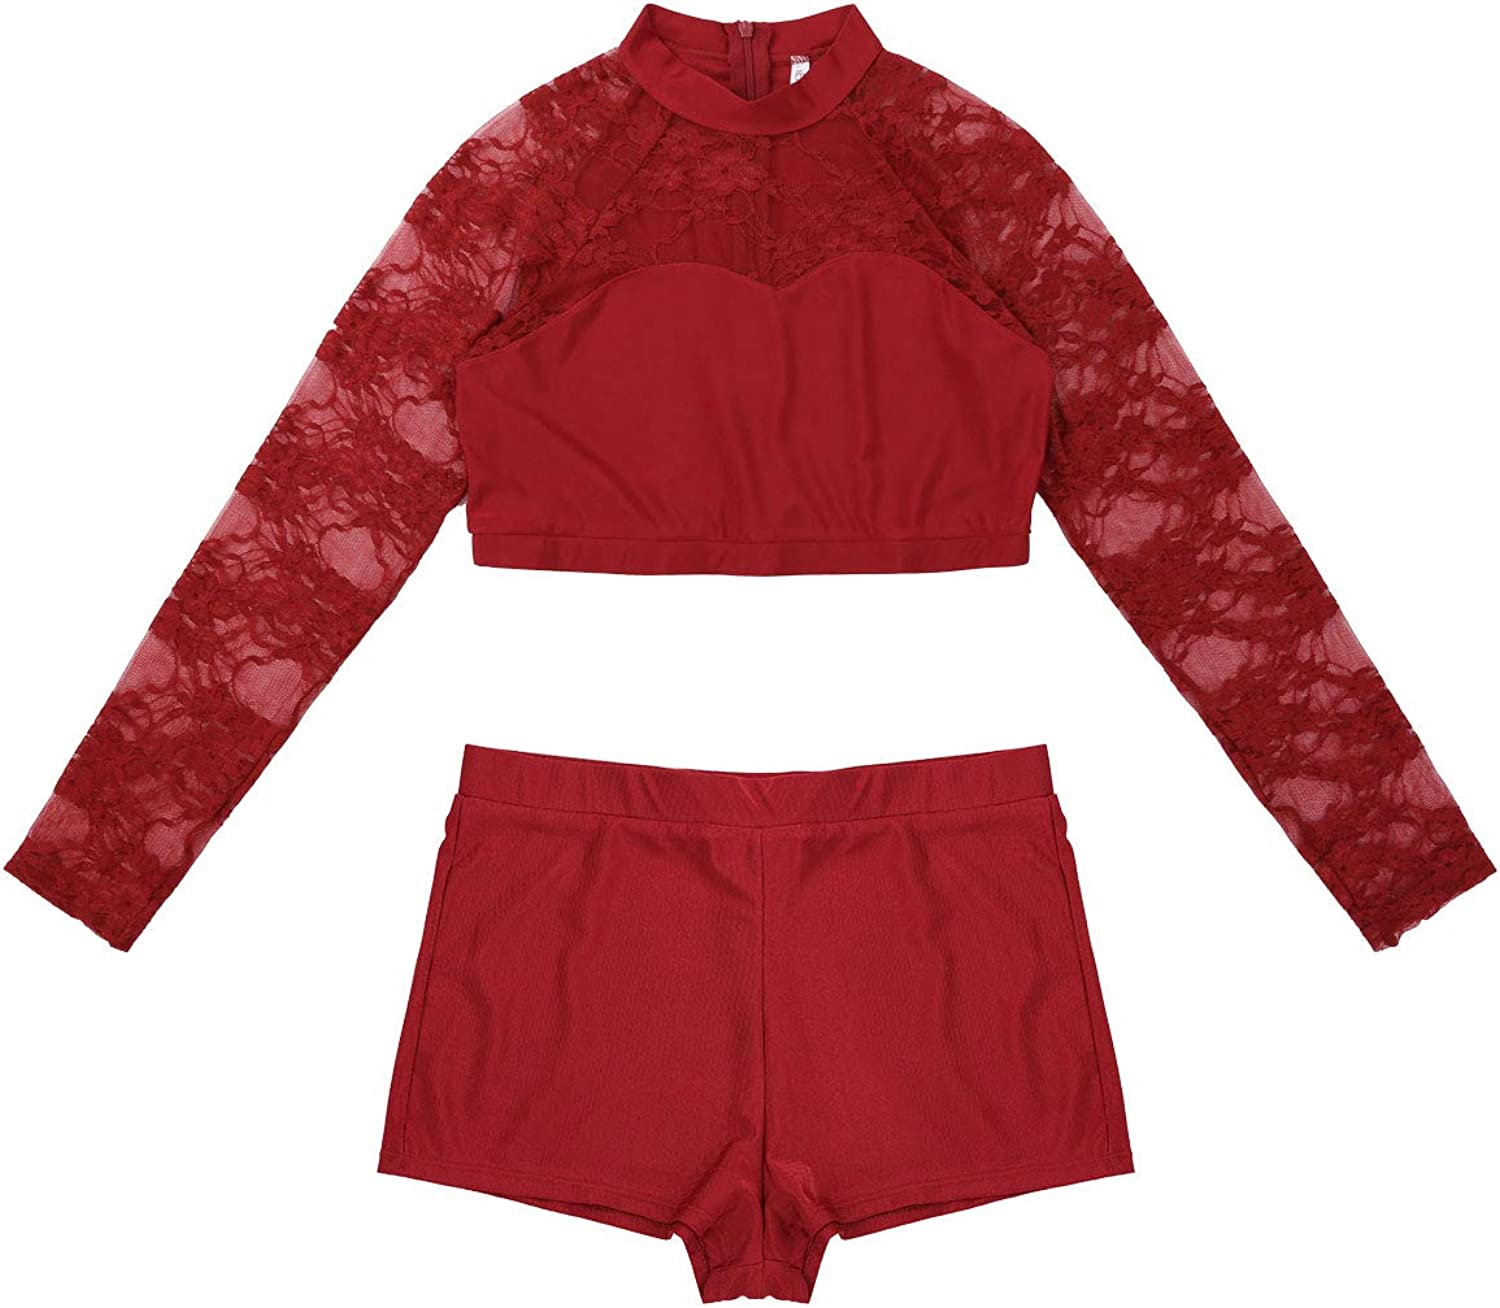 ACSUSS Women Adult Lace Overlay Mock Neck Lyrical 2 Pieces Crop Top with Shorts Set Dance Outfits